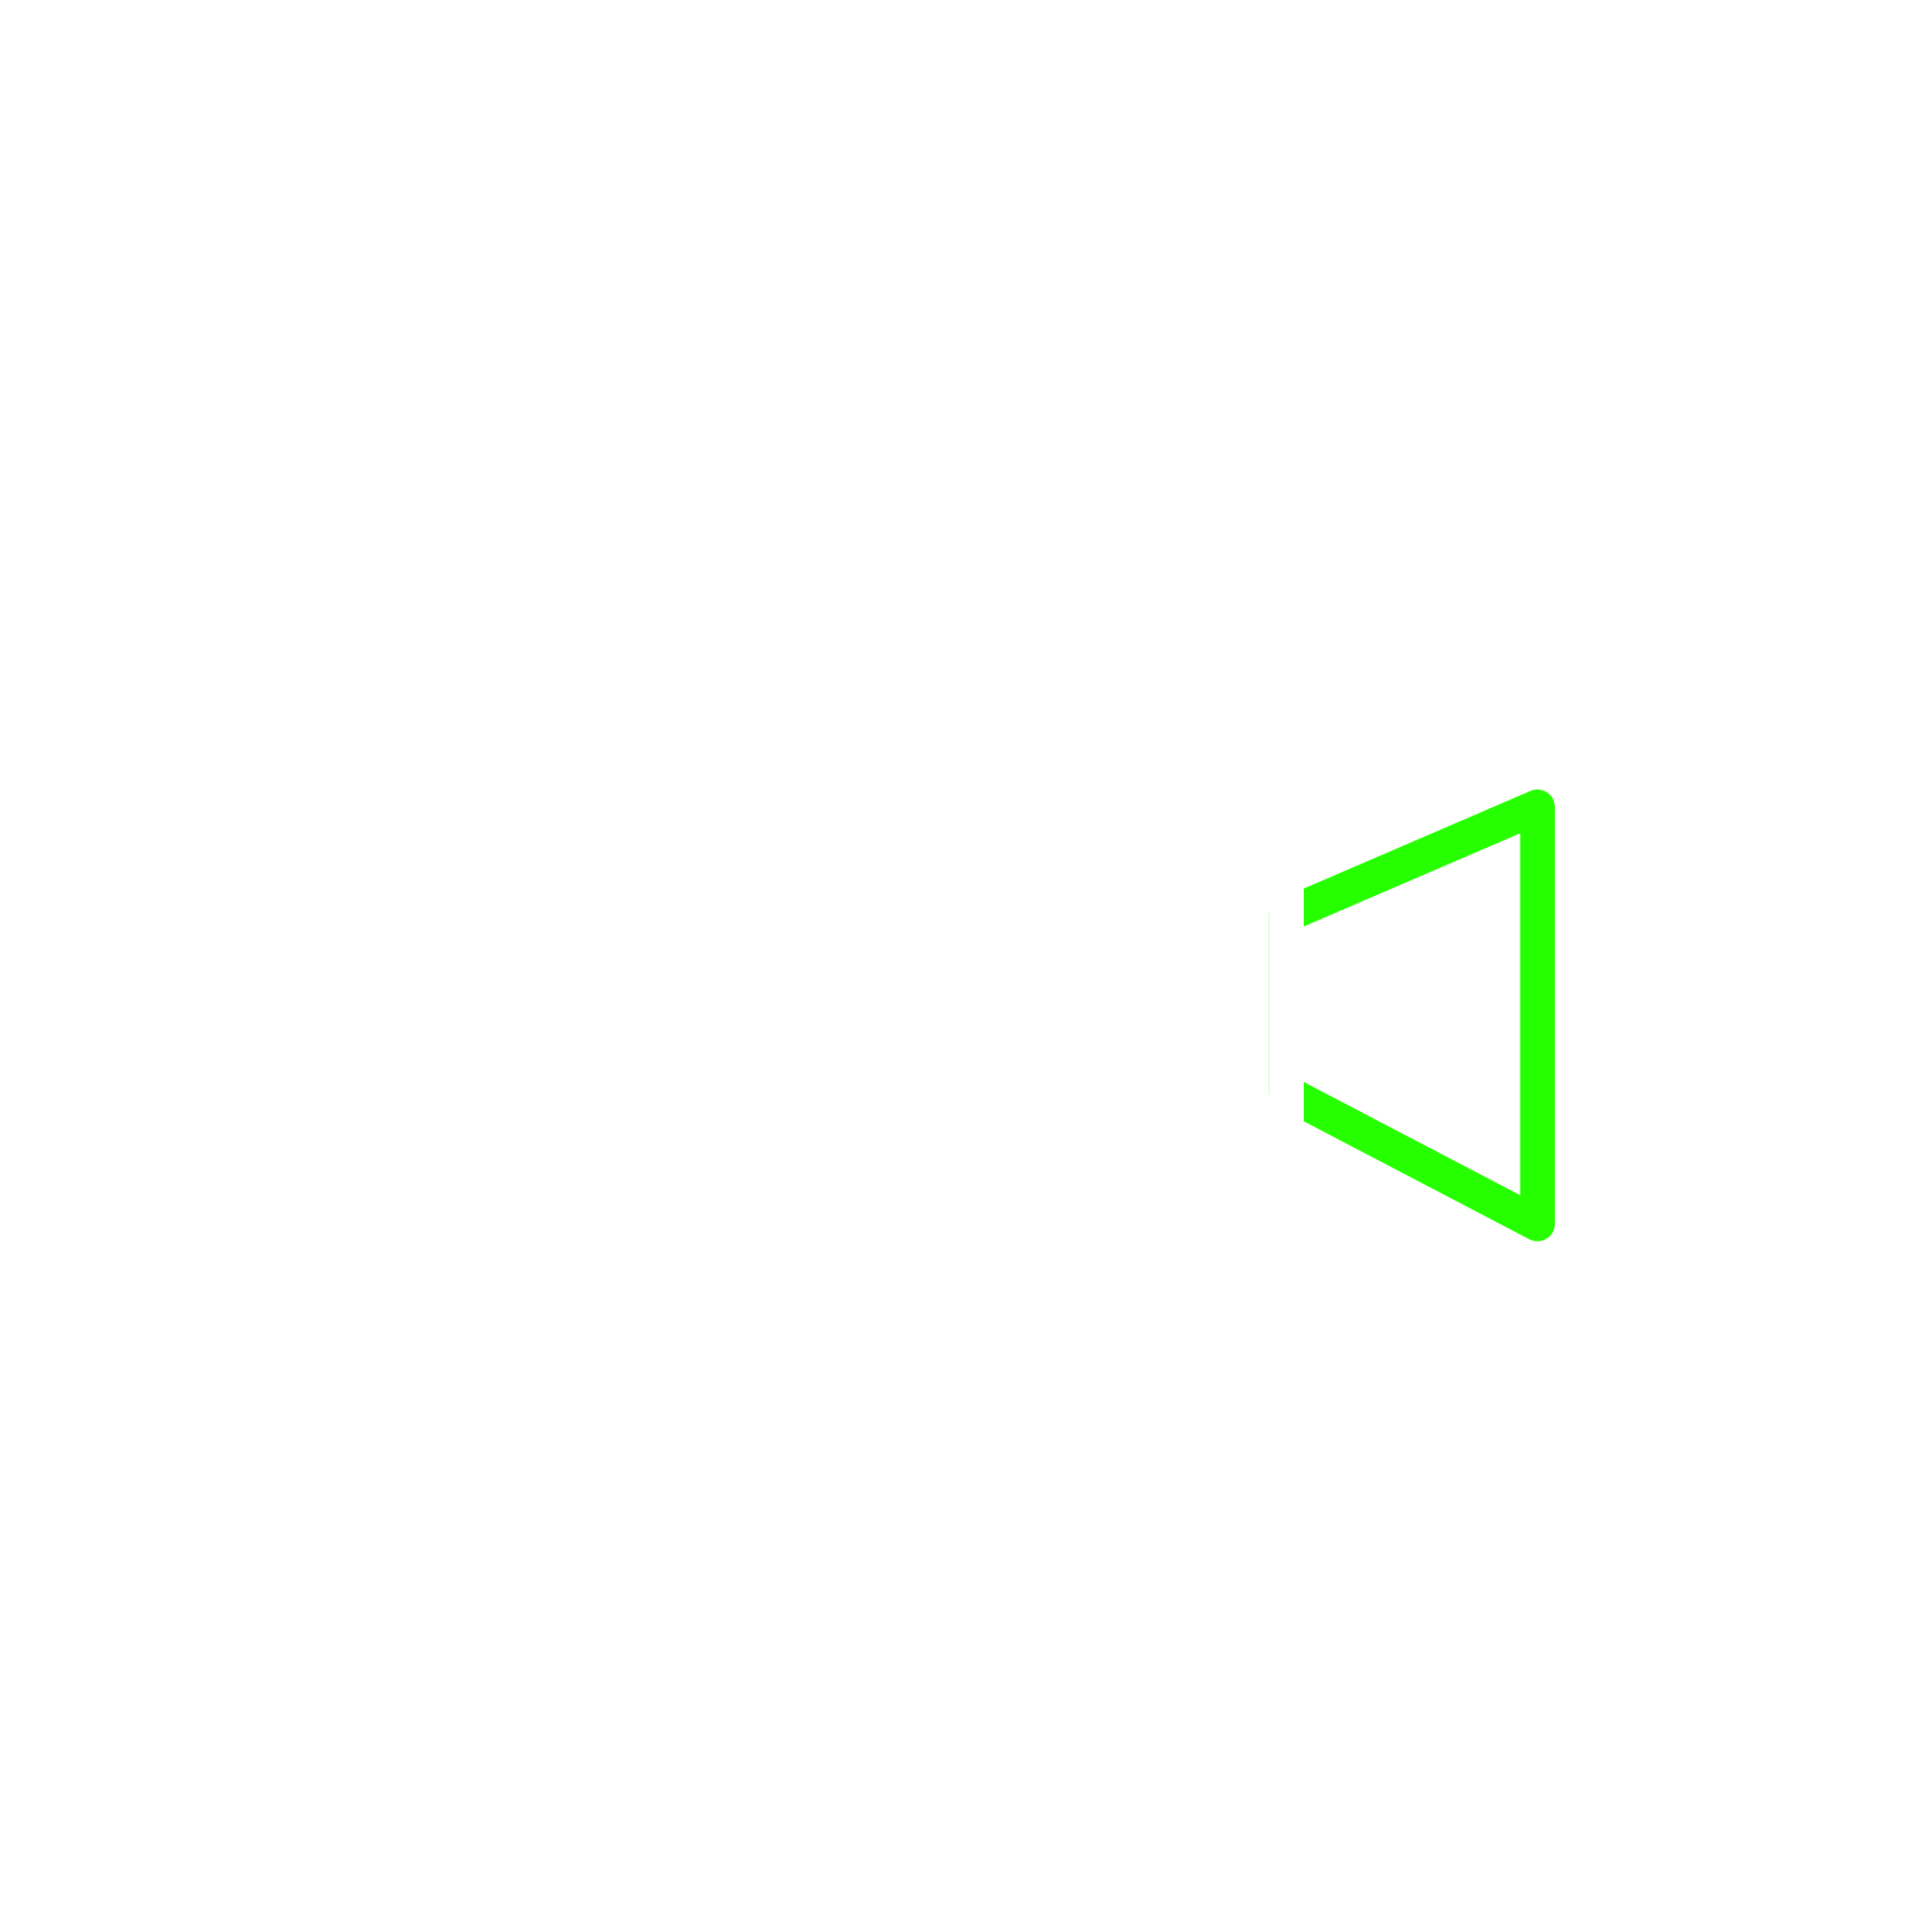 Video vector icon